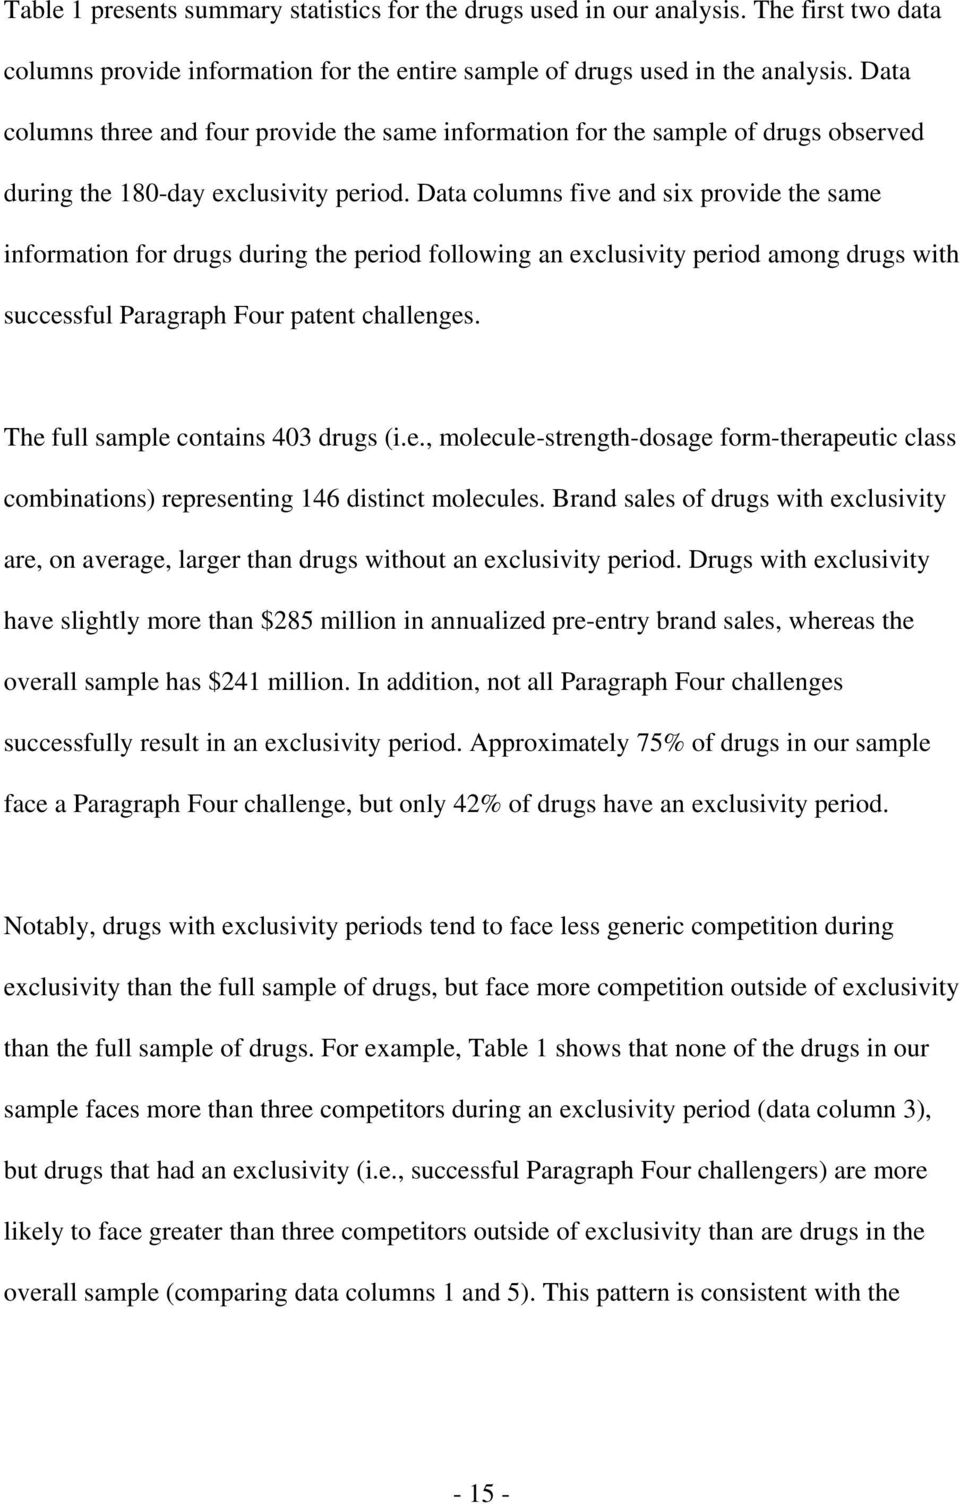 Data columns five and six provide the same information for drugs during the period following an exclusivity period among drugs with successful Paragraph Four patent challenges.